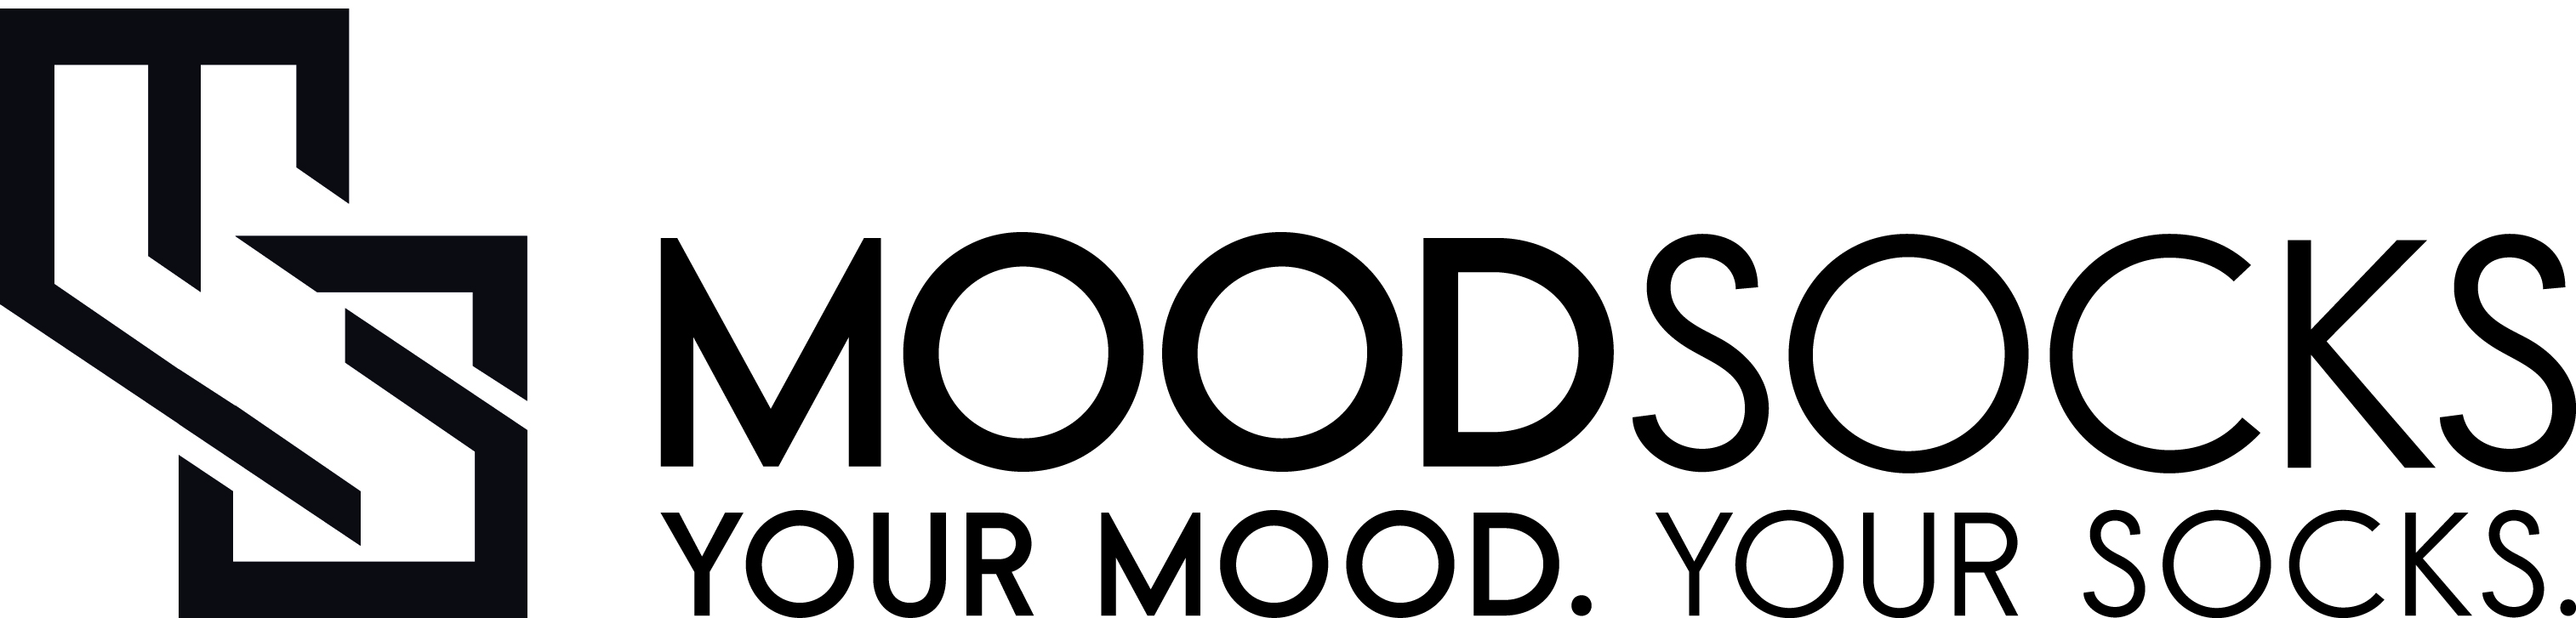 MoodSocks